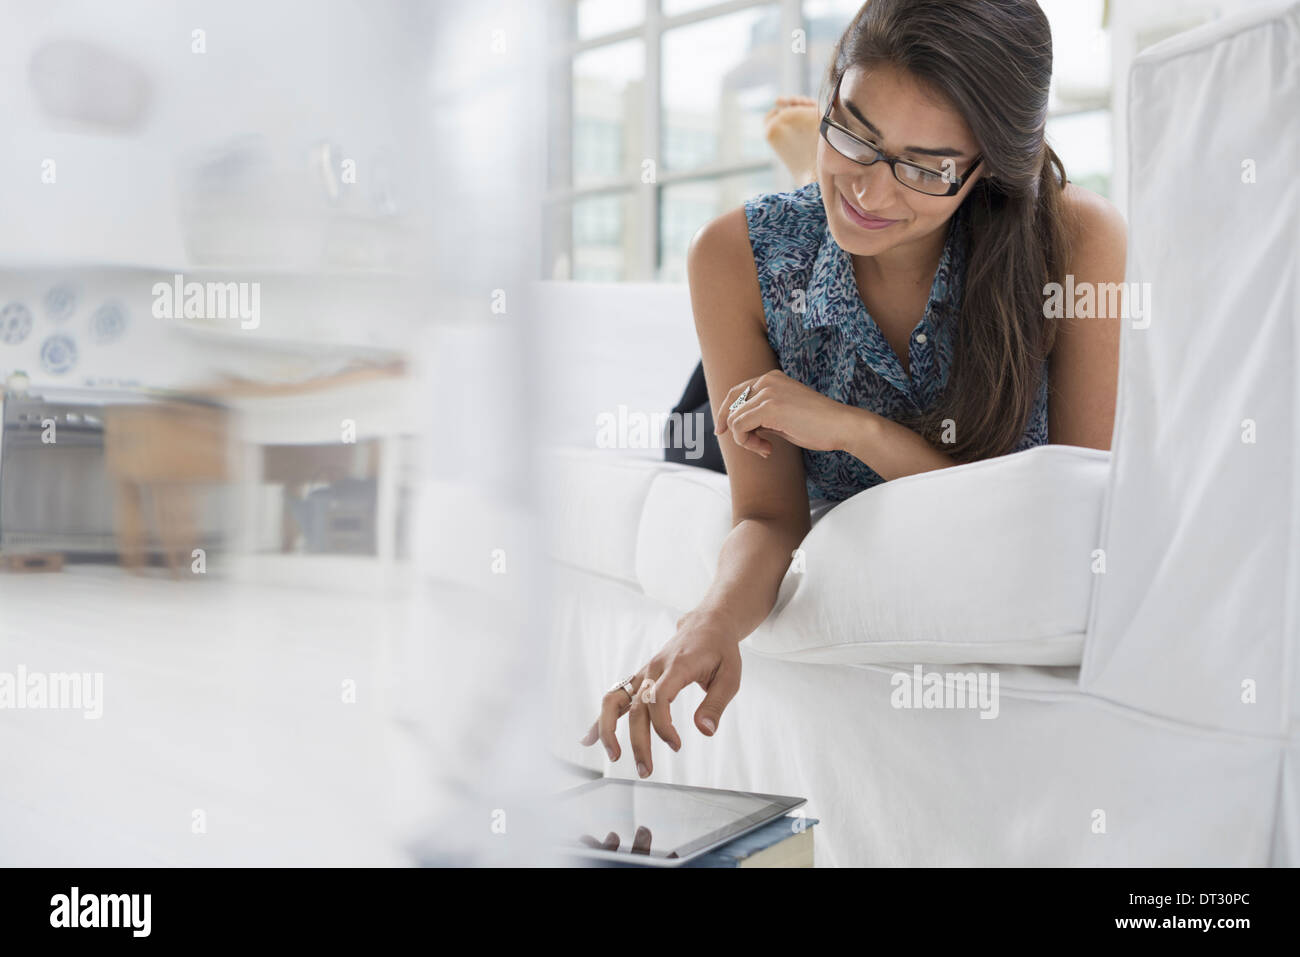 One person sitting comfortably in a quiet airy office environment Using a digital tablet - Stock Image